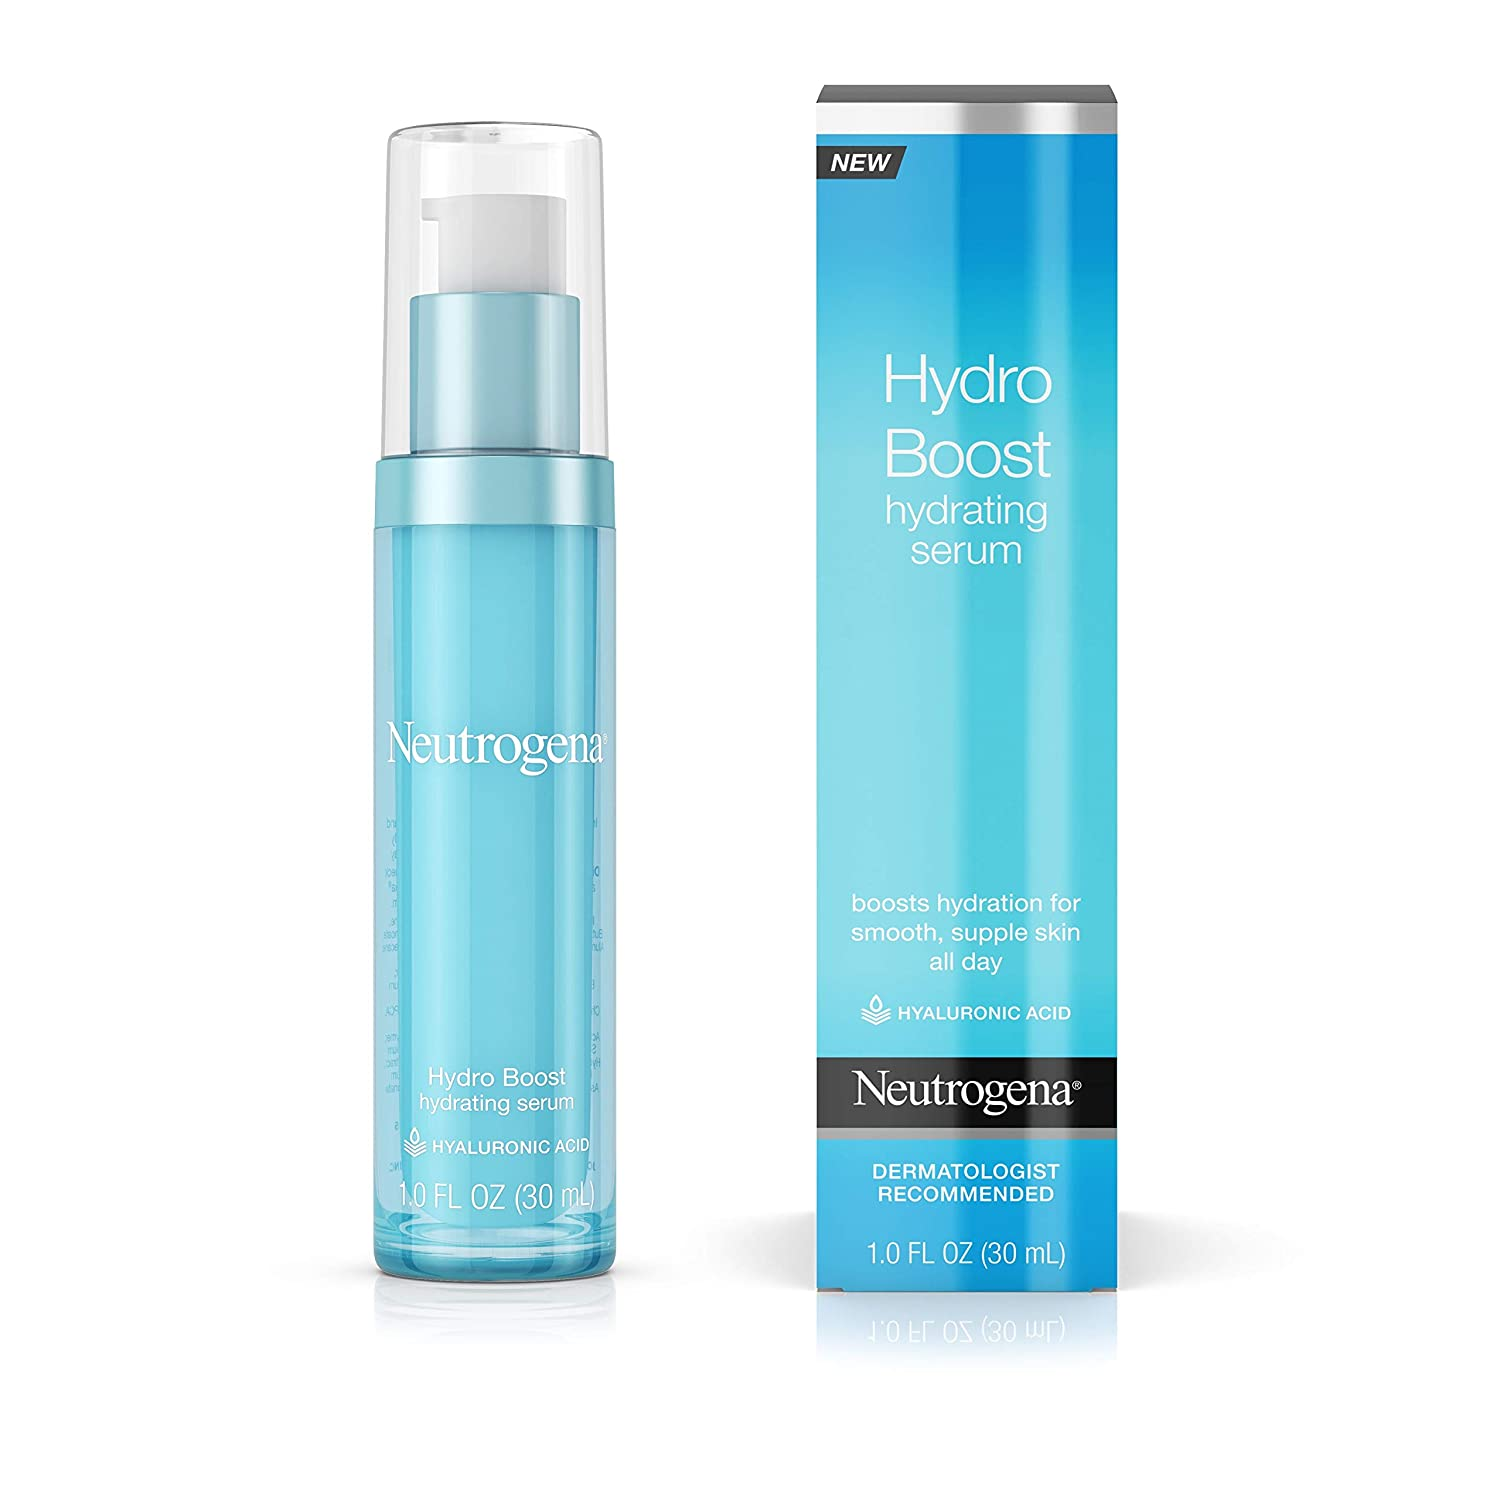 Neutrogena Hydro Boost Hydrating Hyaluronic Acid Serum